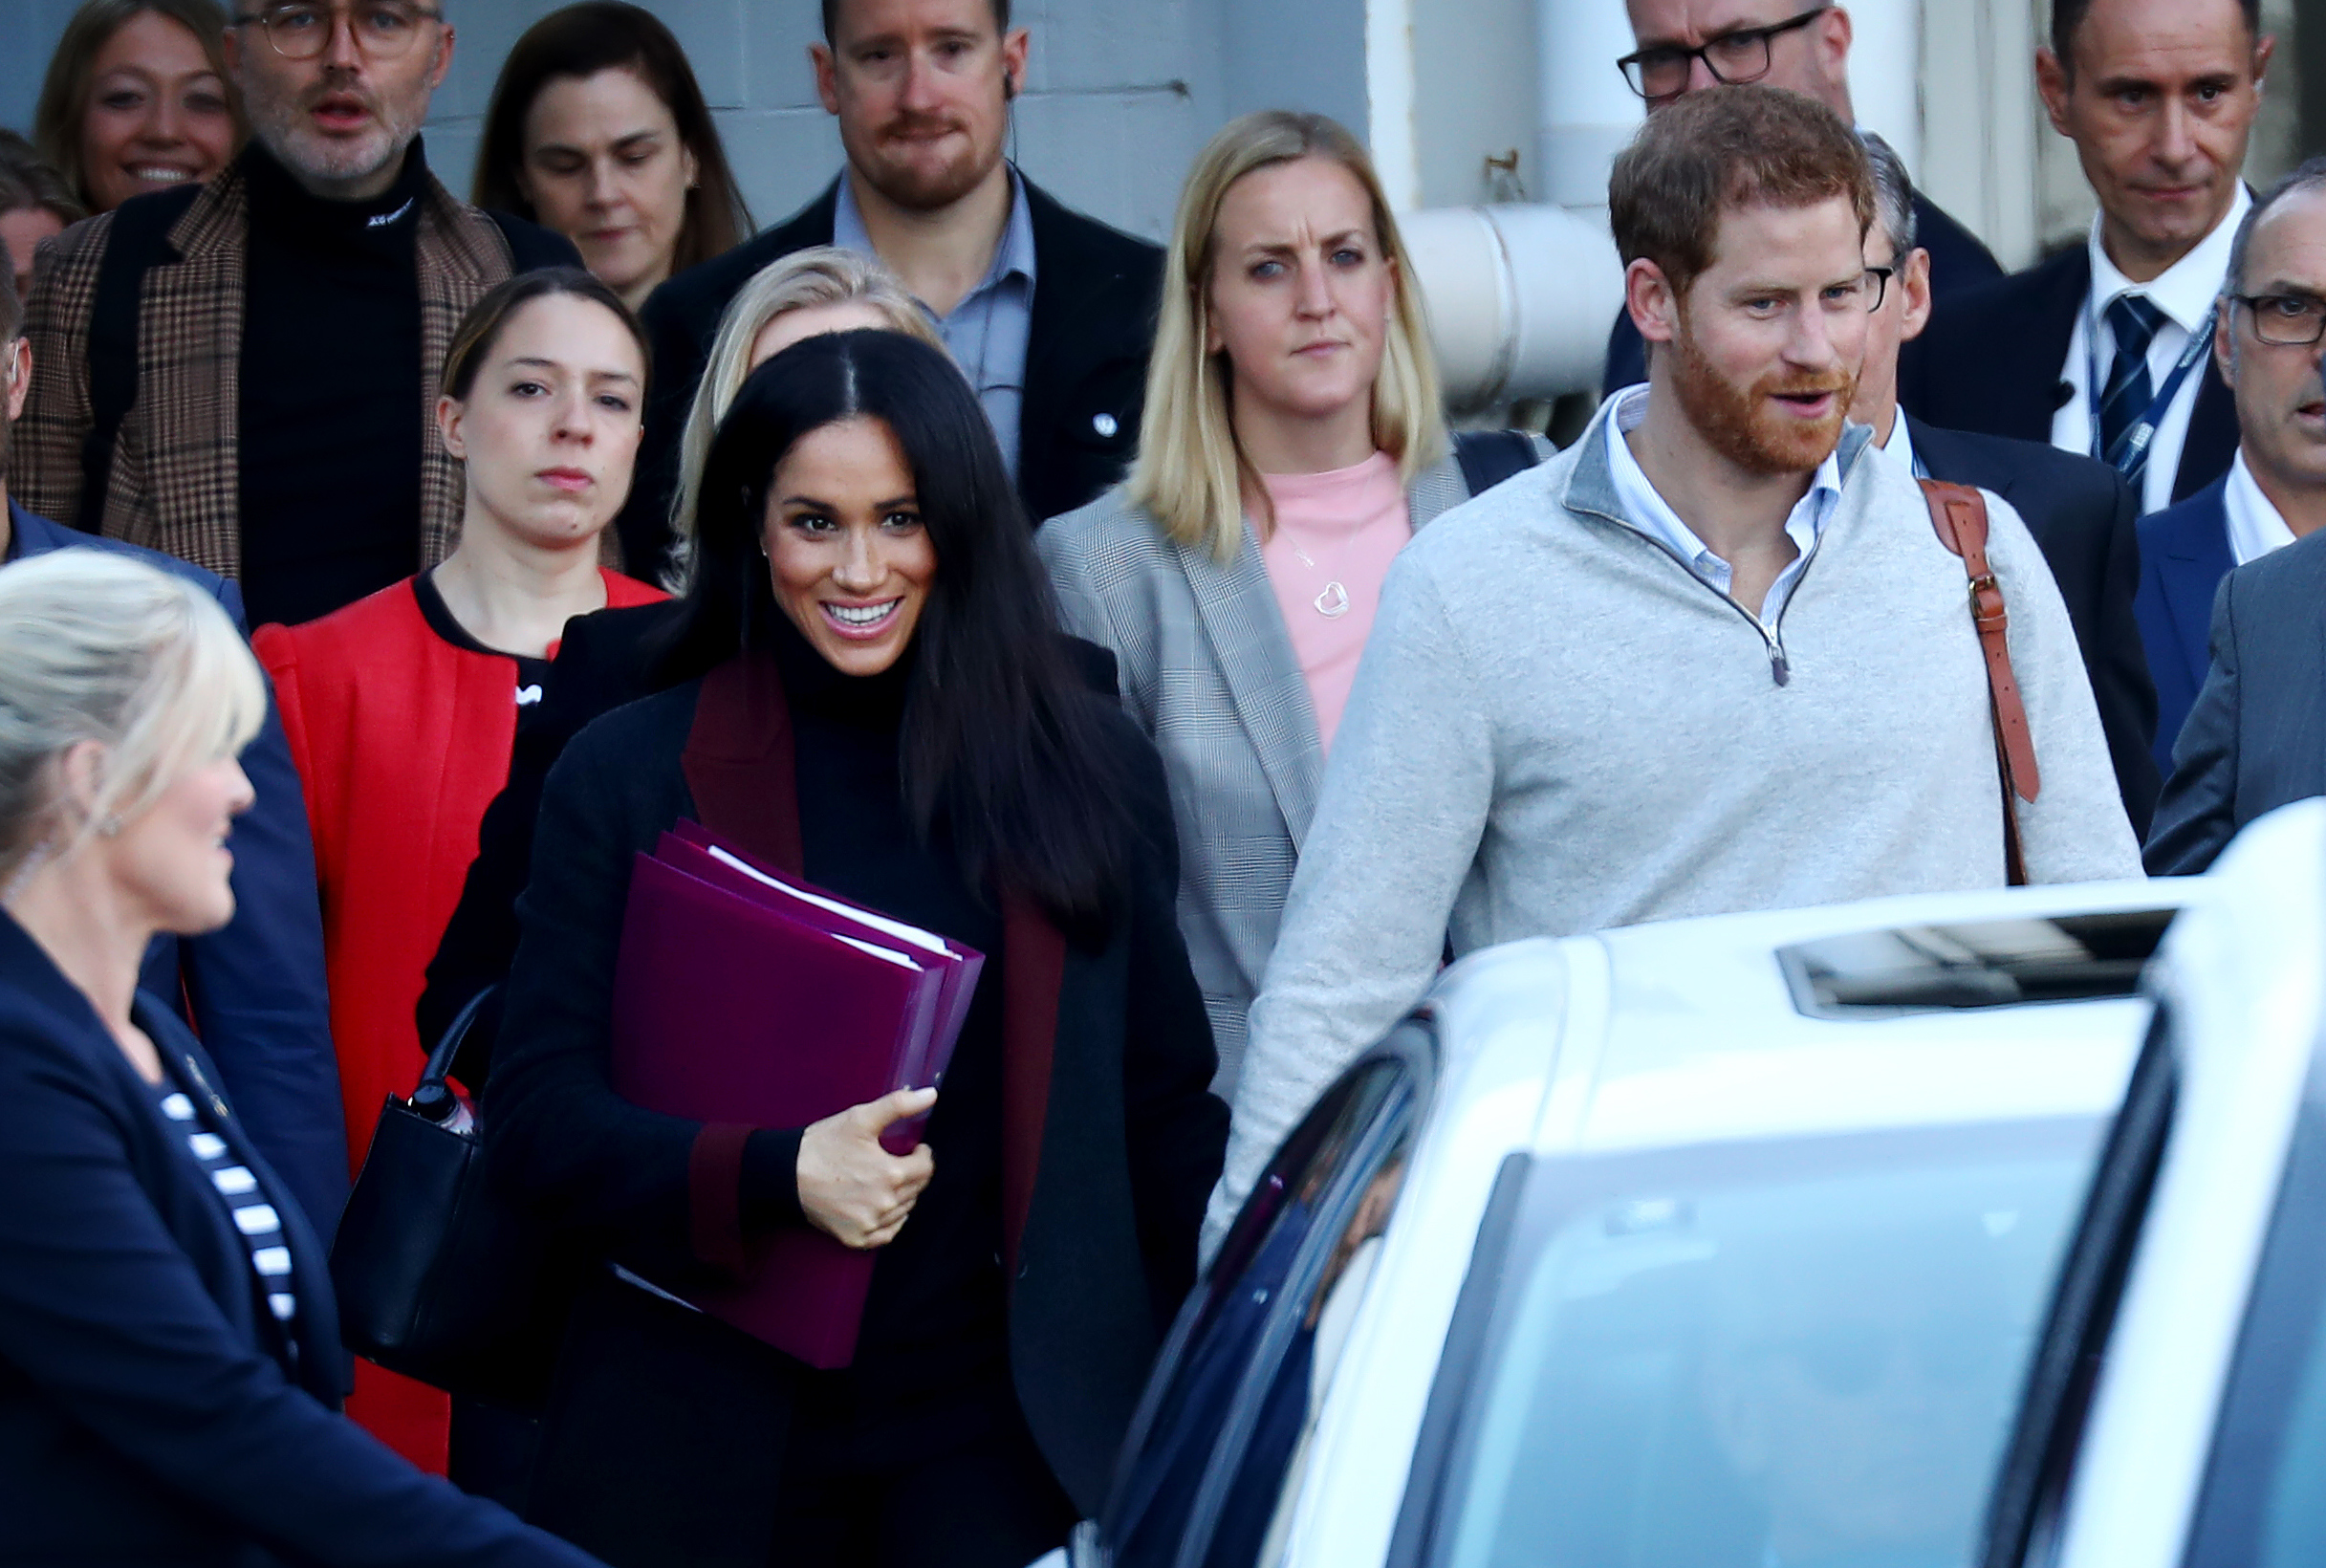 Prince Harry, Duke of Sussex and Meghan, Duchess of Sussex arrive into Sydney International Airport in Sydney, New South Wales. Prince Harry and Meghan Markle are in Sydney ahead of the Invictus Games.